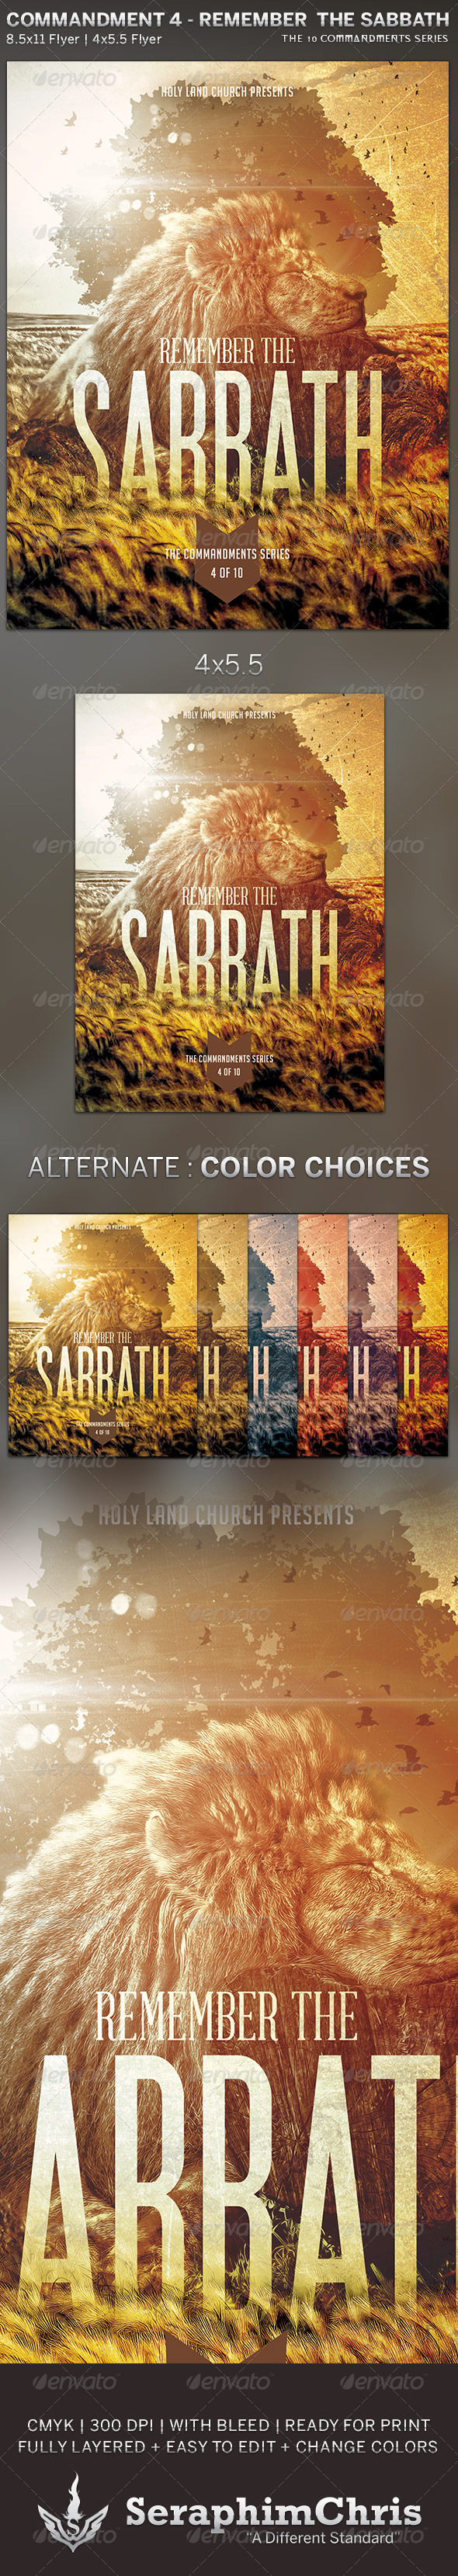 Remember the Sabbath Church Flyer Template